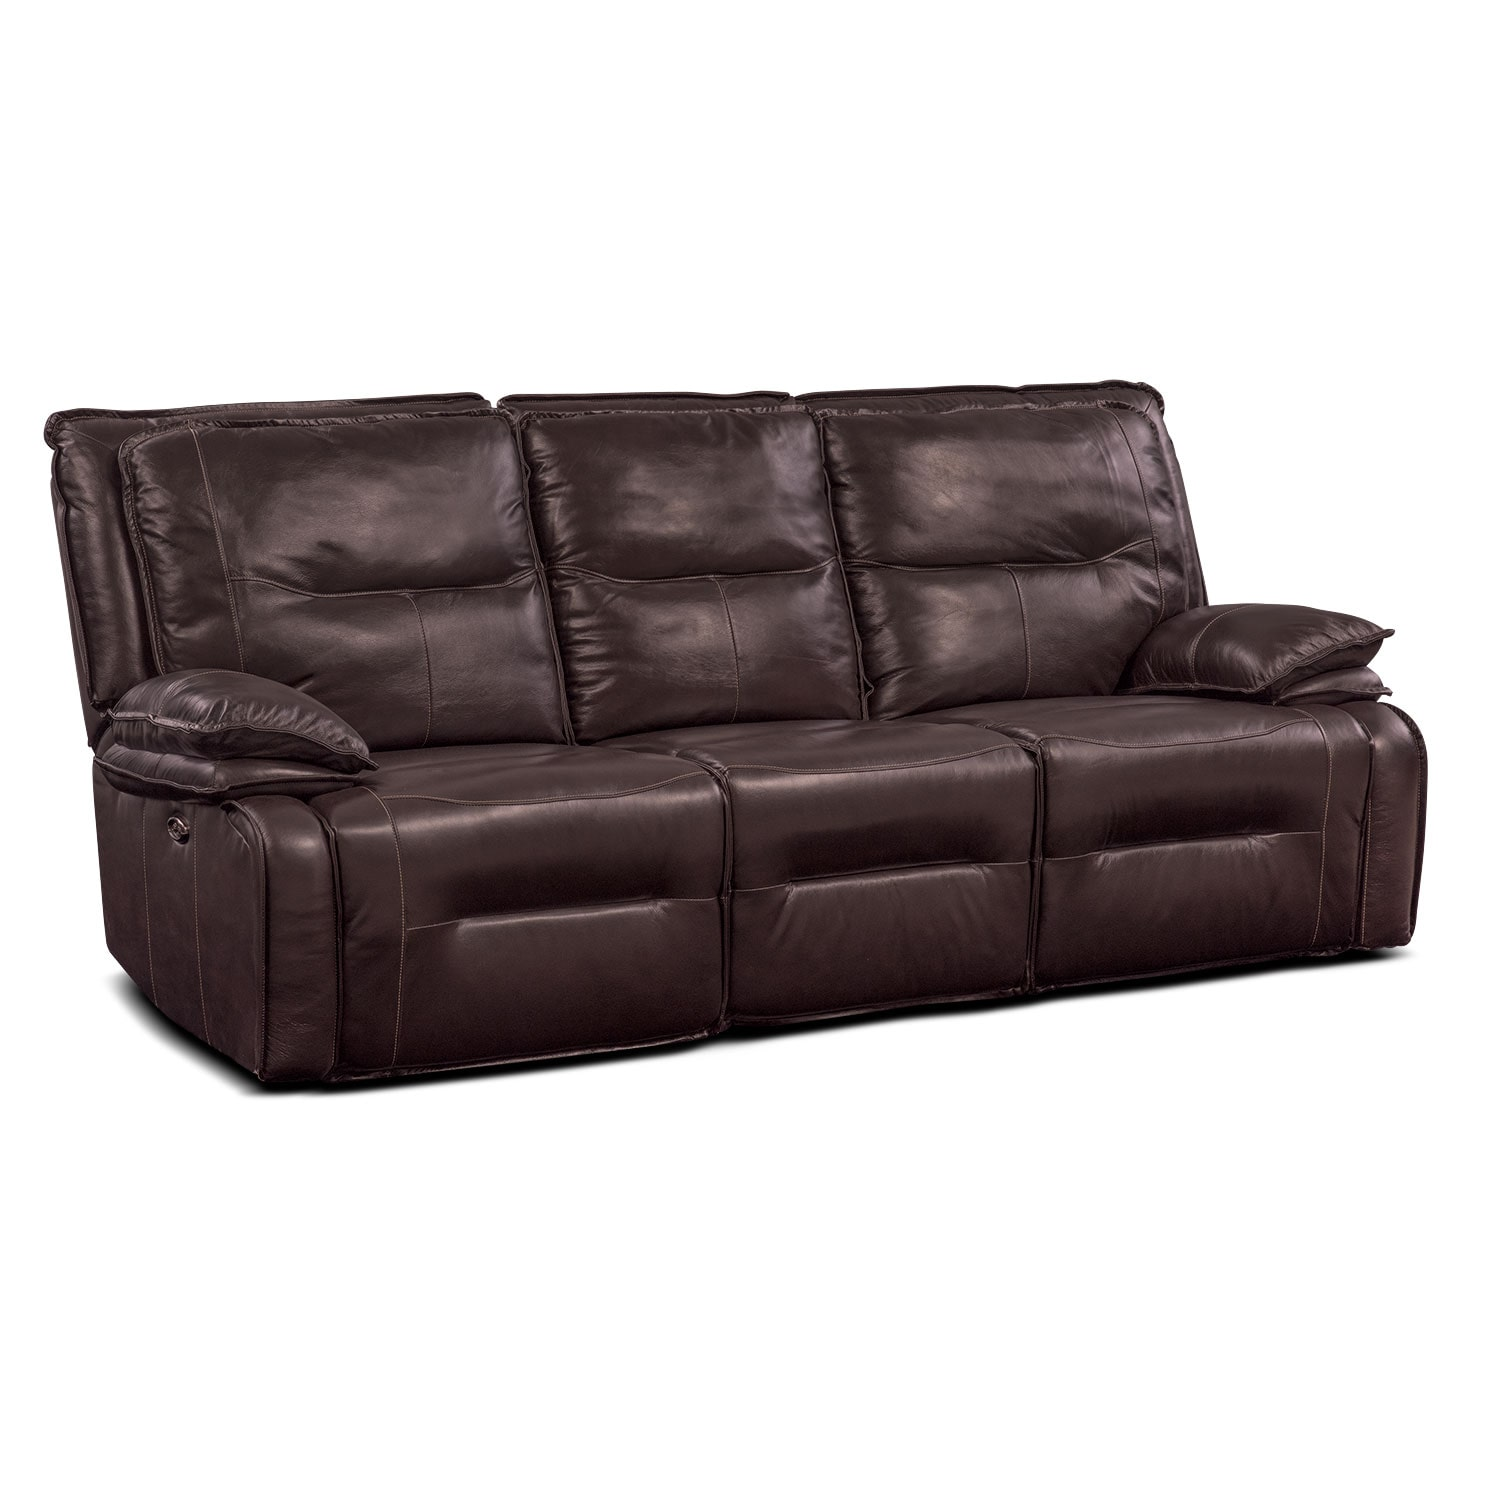 Living Room Furniture - Nikki 3-Piece Power Reclining Sectional with 3 Recliners - Brown